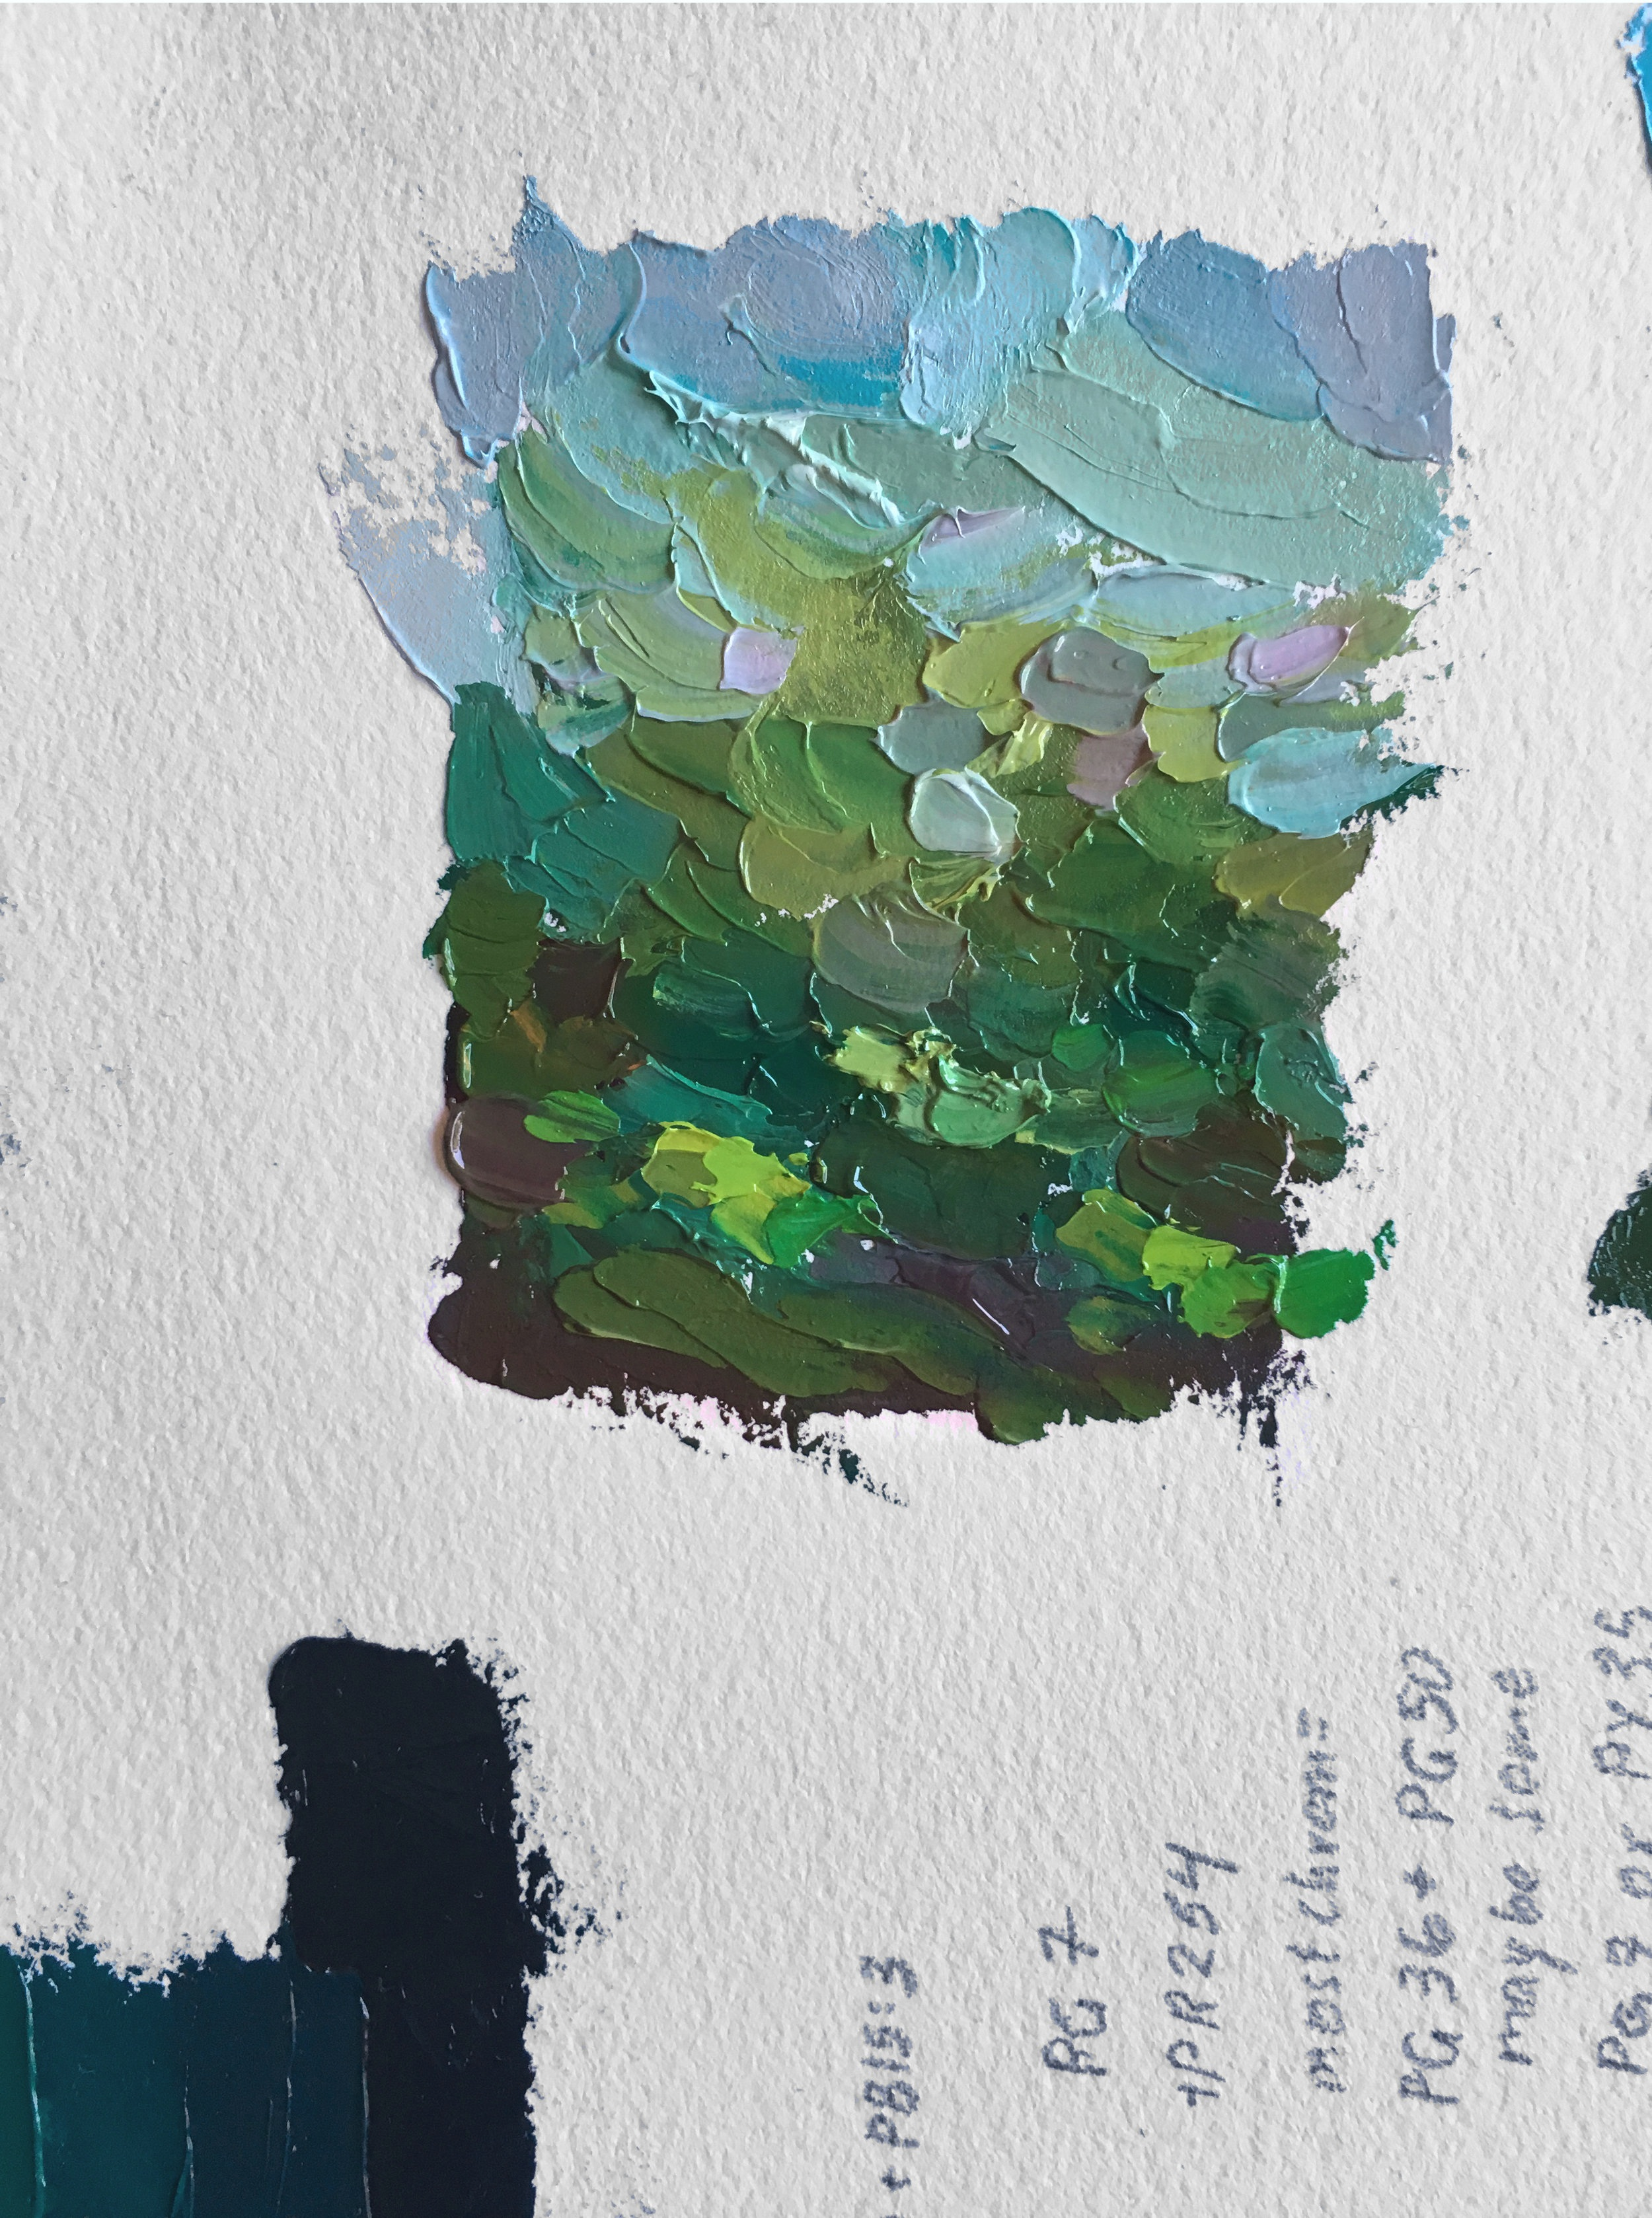 "Color Study in Green, 3"" x 2.5"" Oil on Arches Oil Paper, by Melissa Carmon"